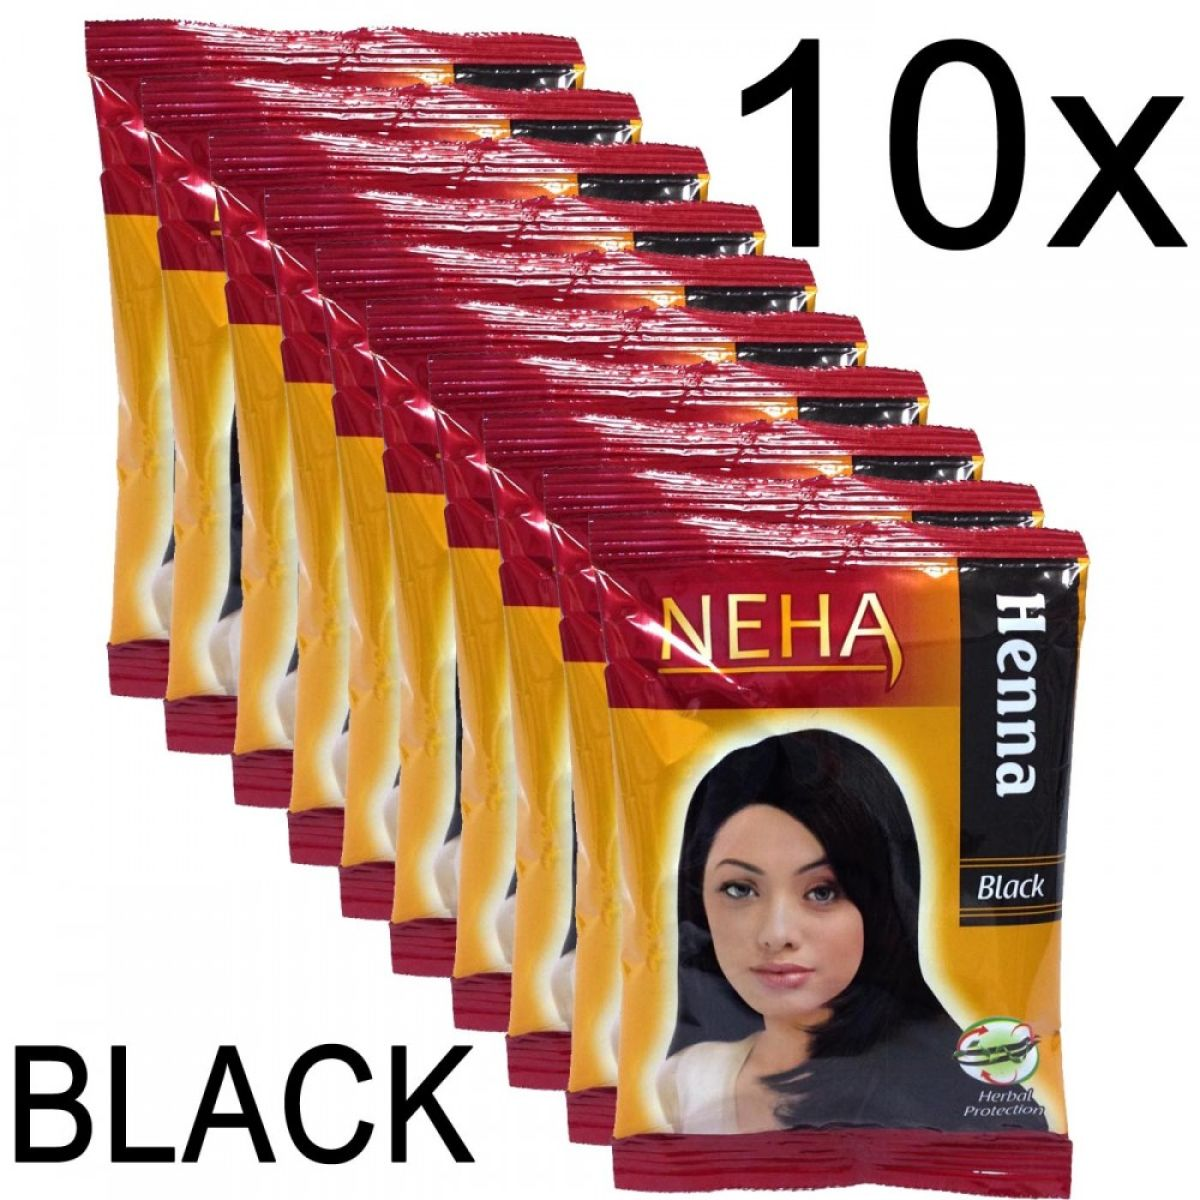 10x Neha Herbal Henna Hair Powder - Haarfärbemittel (Schwarz) 200g